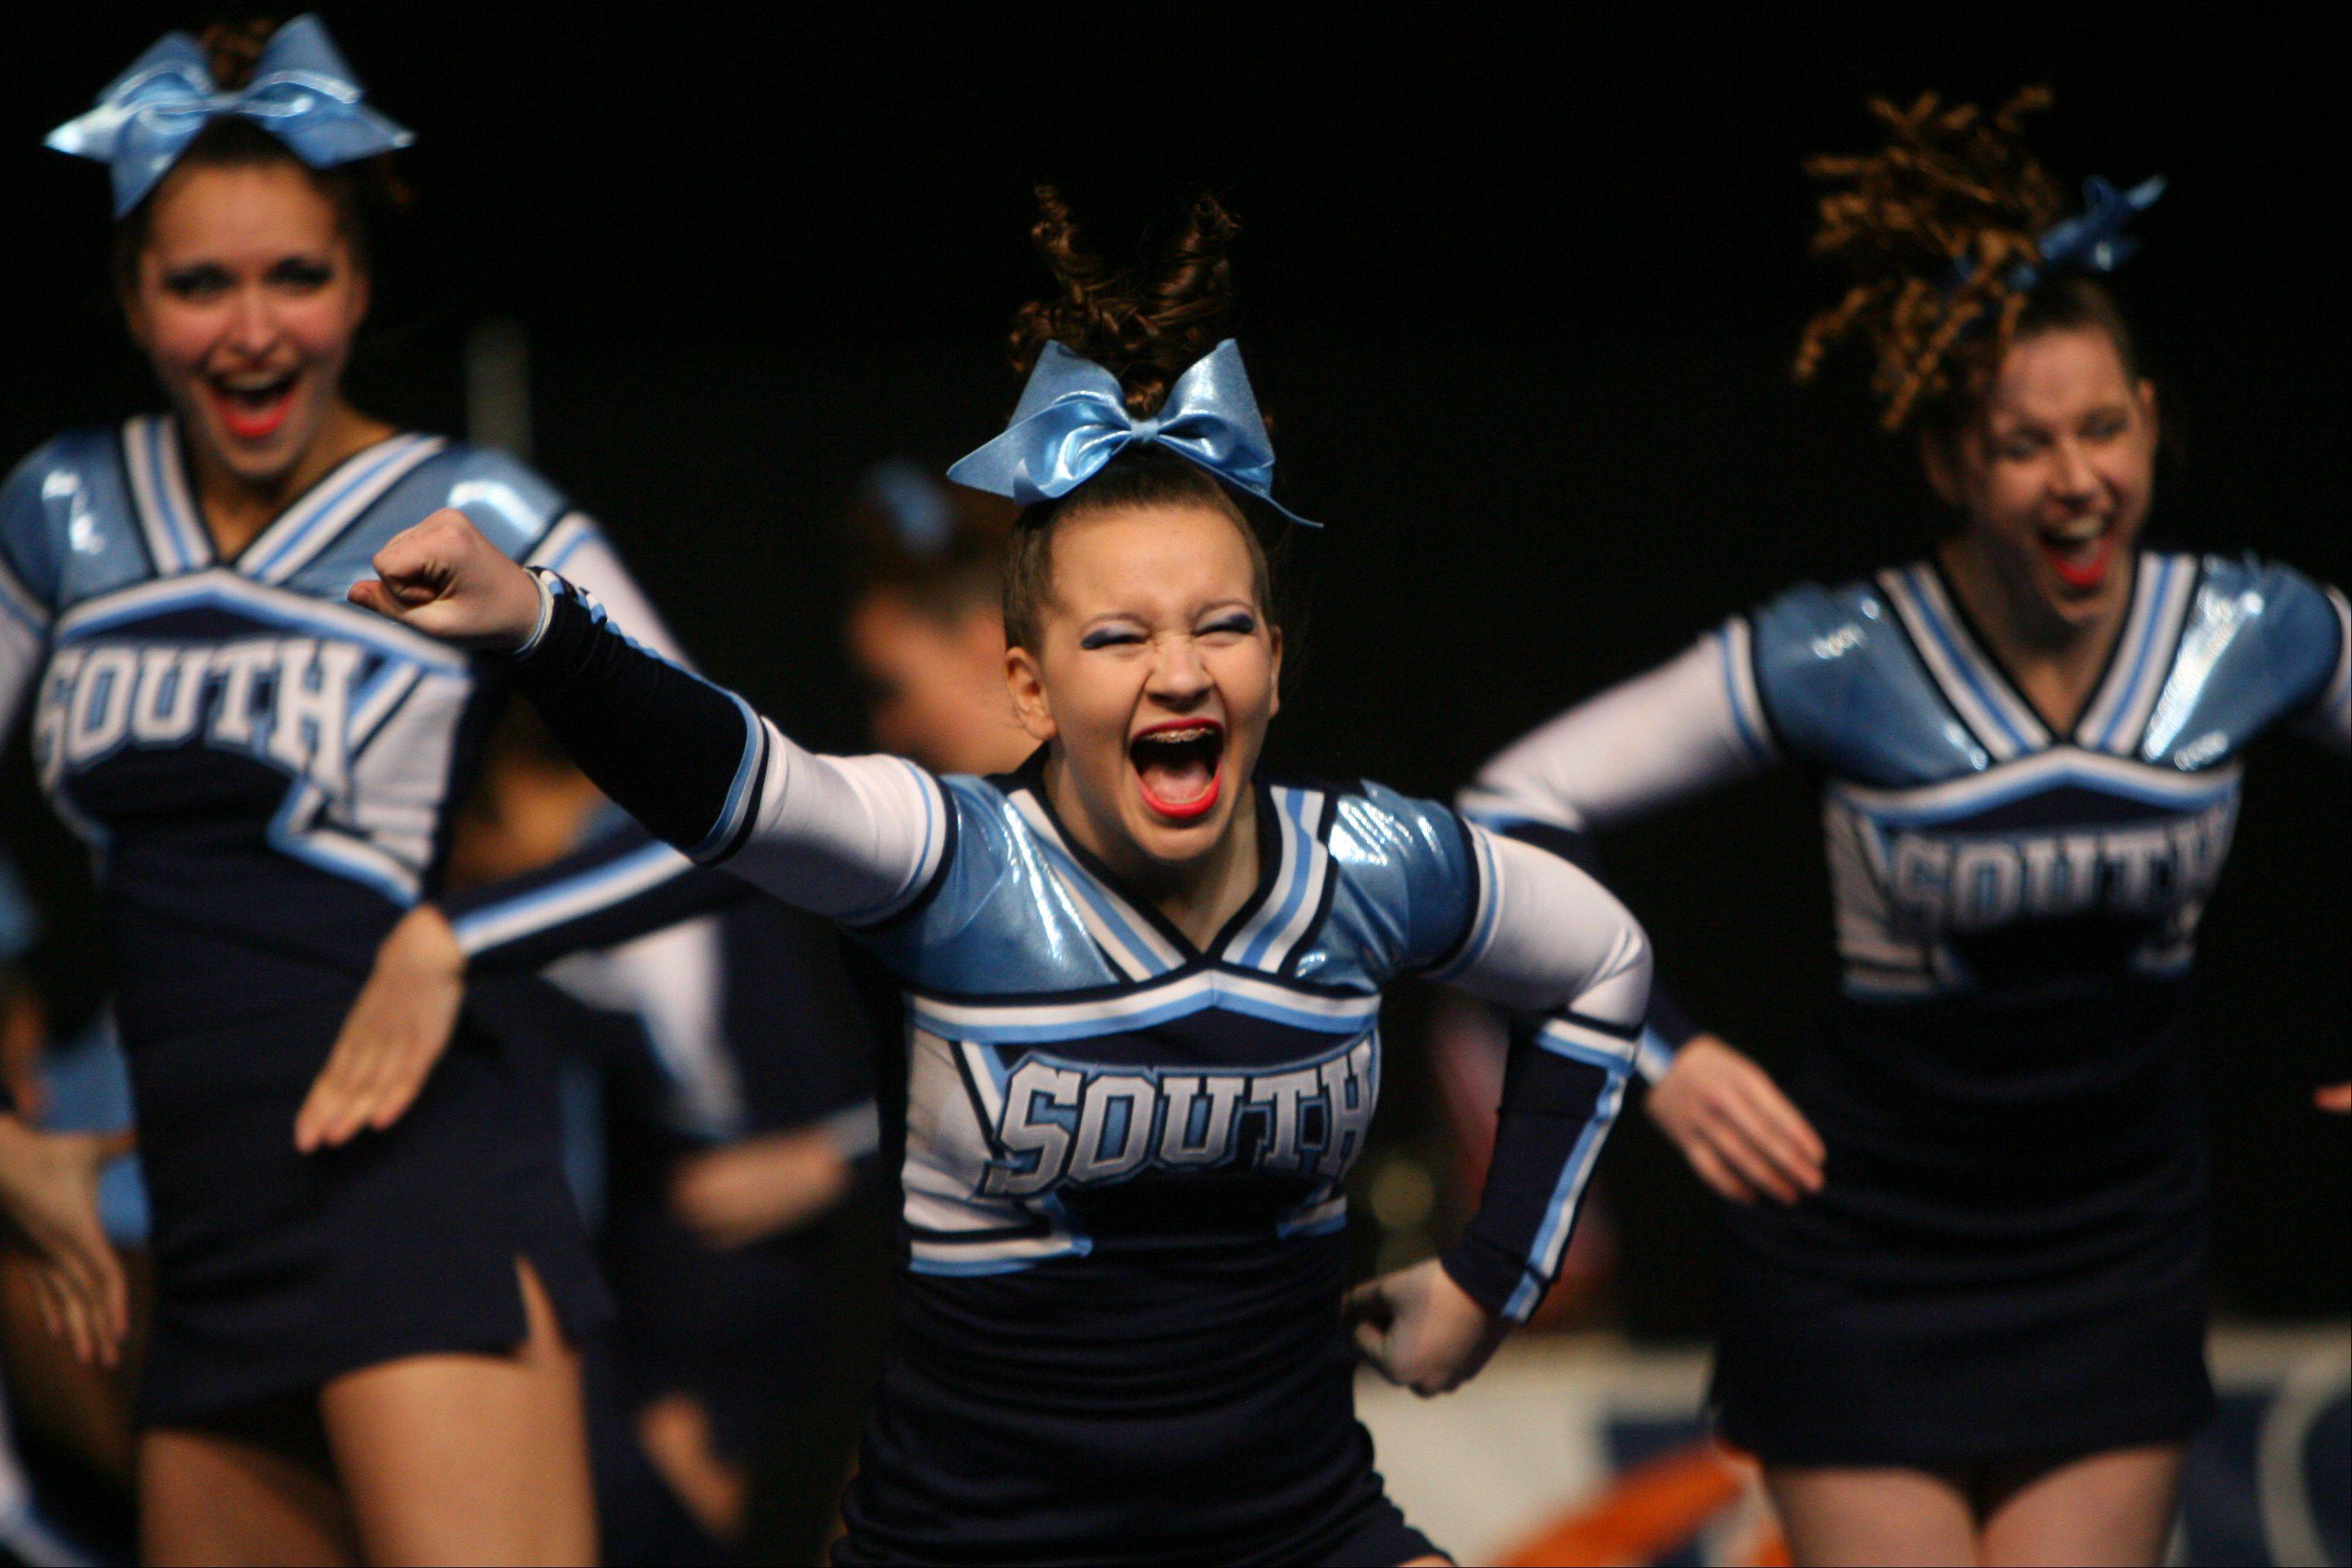 Downers Grove South High School competes in the in the Competitive Cheerleading prelims on Friday at the U.S. Cellular Coliseum in Bloomington.